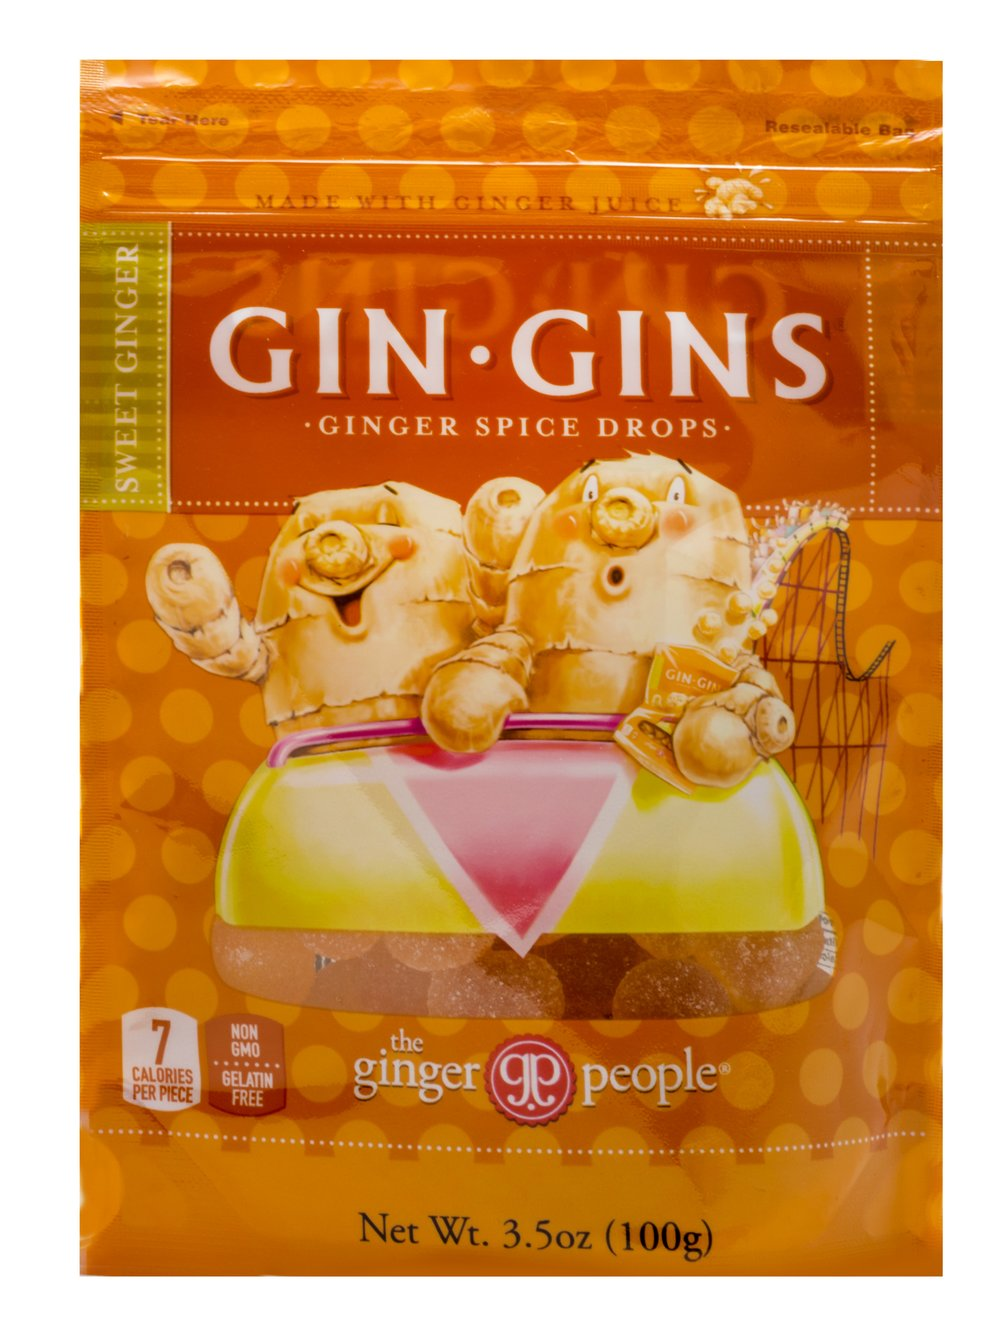 Gin Gins Ginger Spice Drops Thumbnail Alternate Bottle View